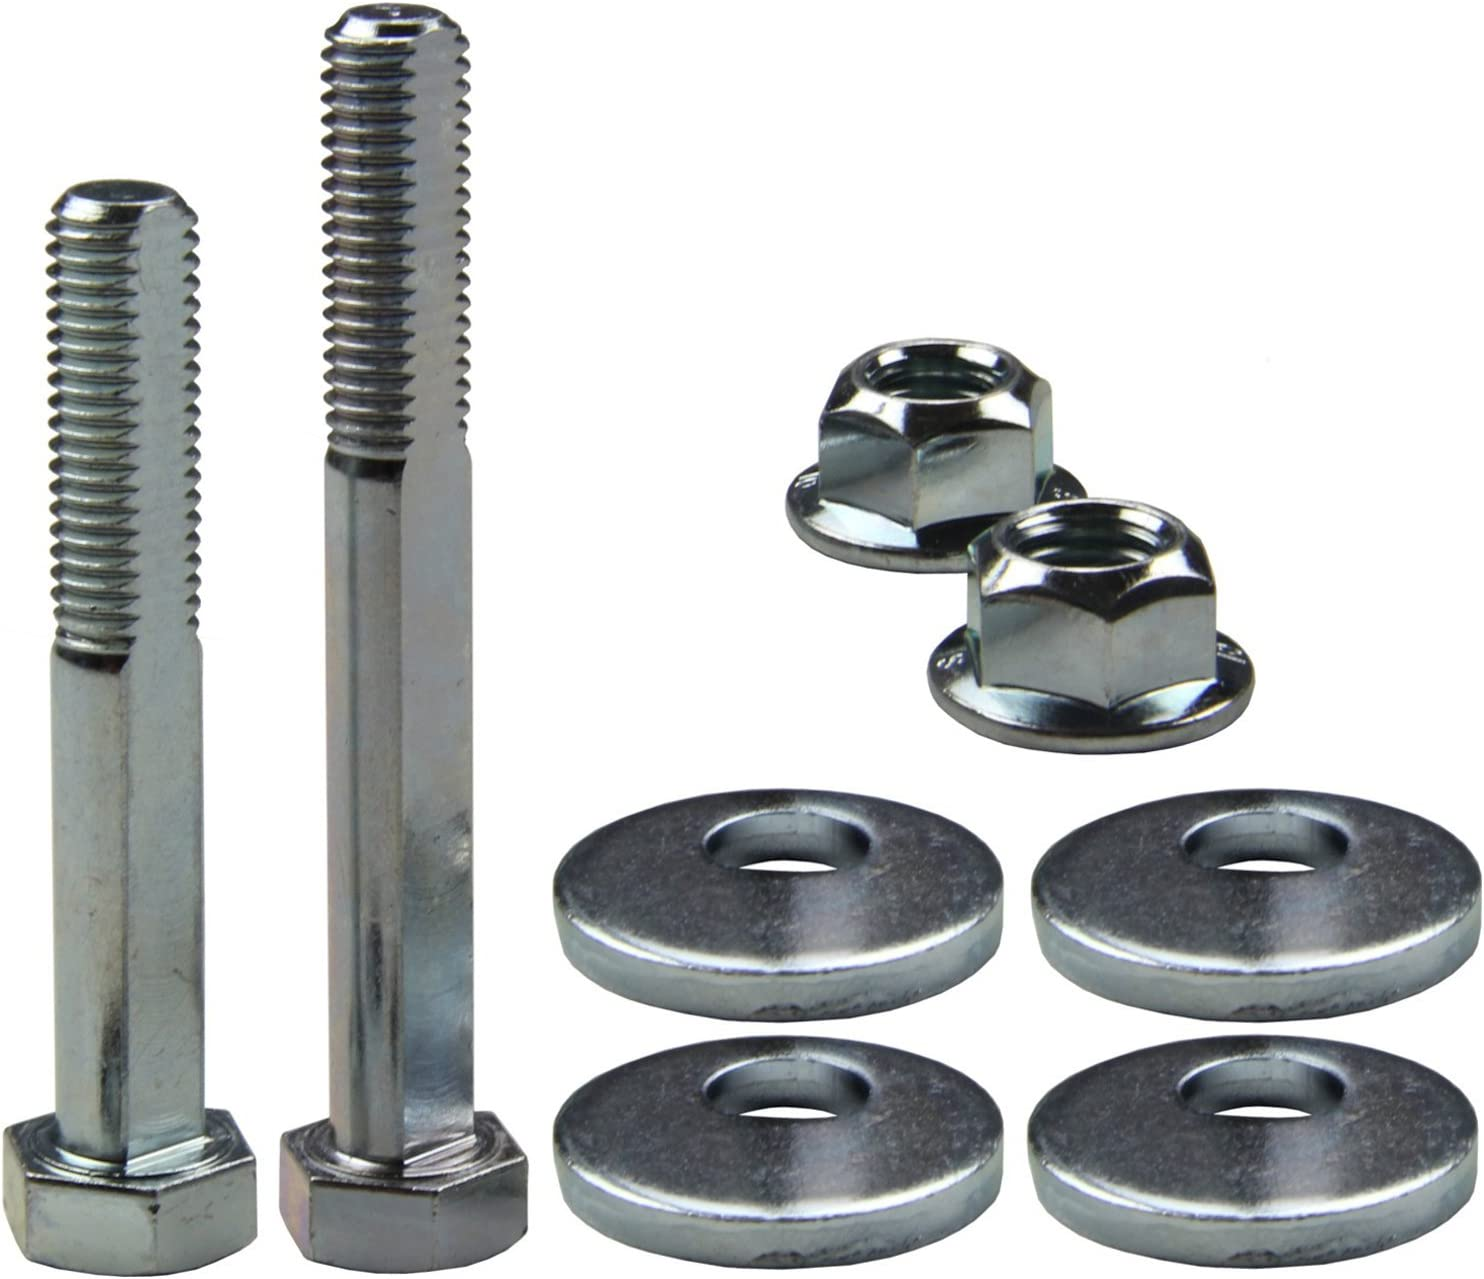 Mevotech Chassis Ms50201 Alignment Cam Bolt Kit